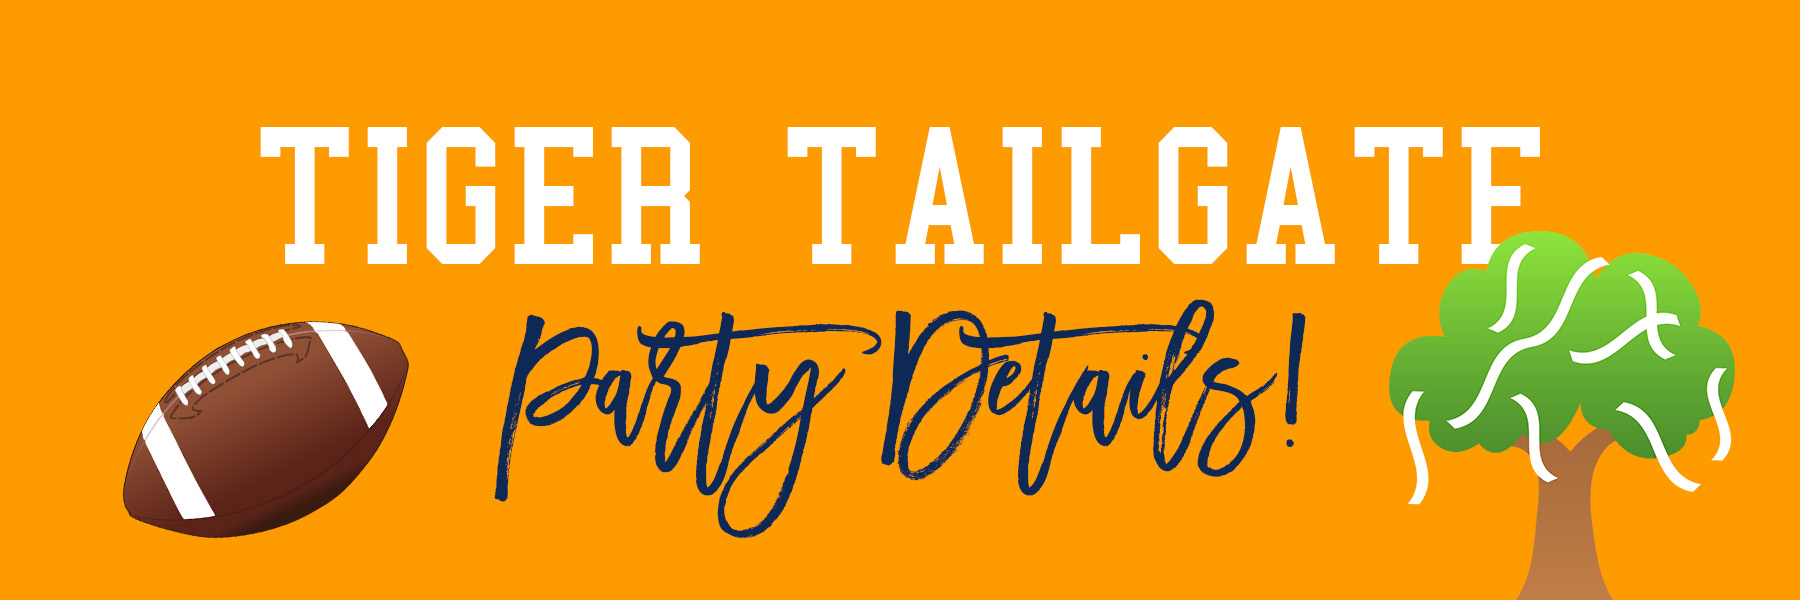 Tiger Tailgate football birthday party details! .jpg